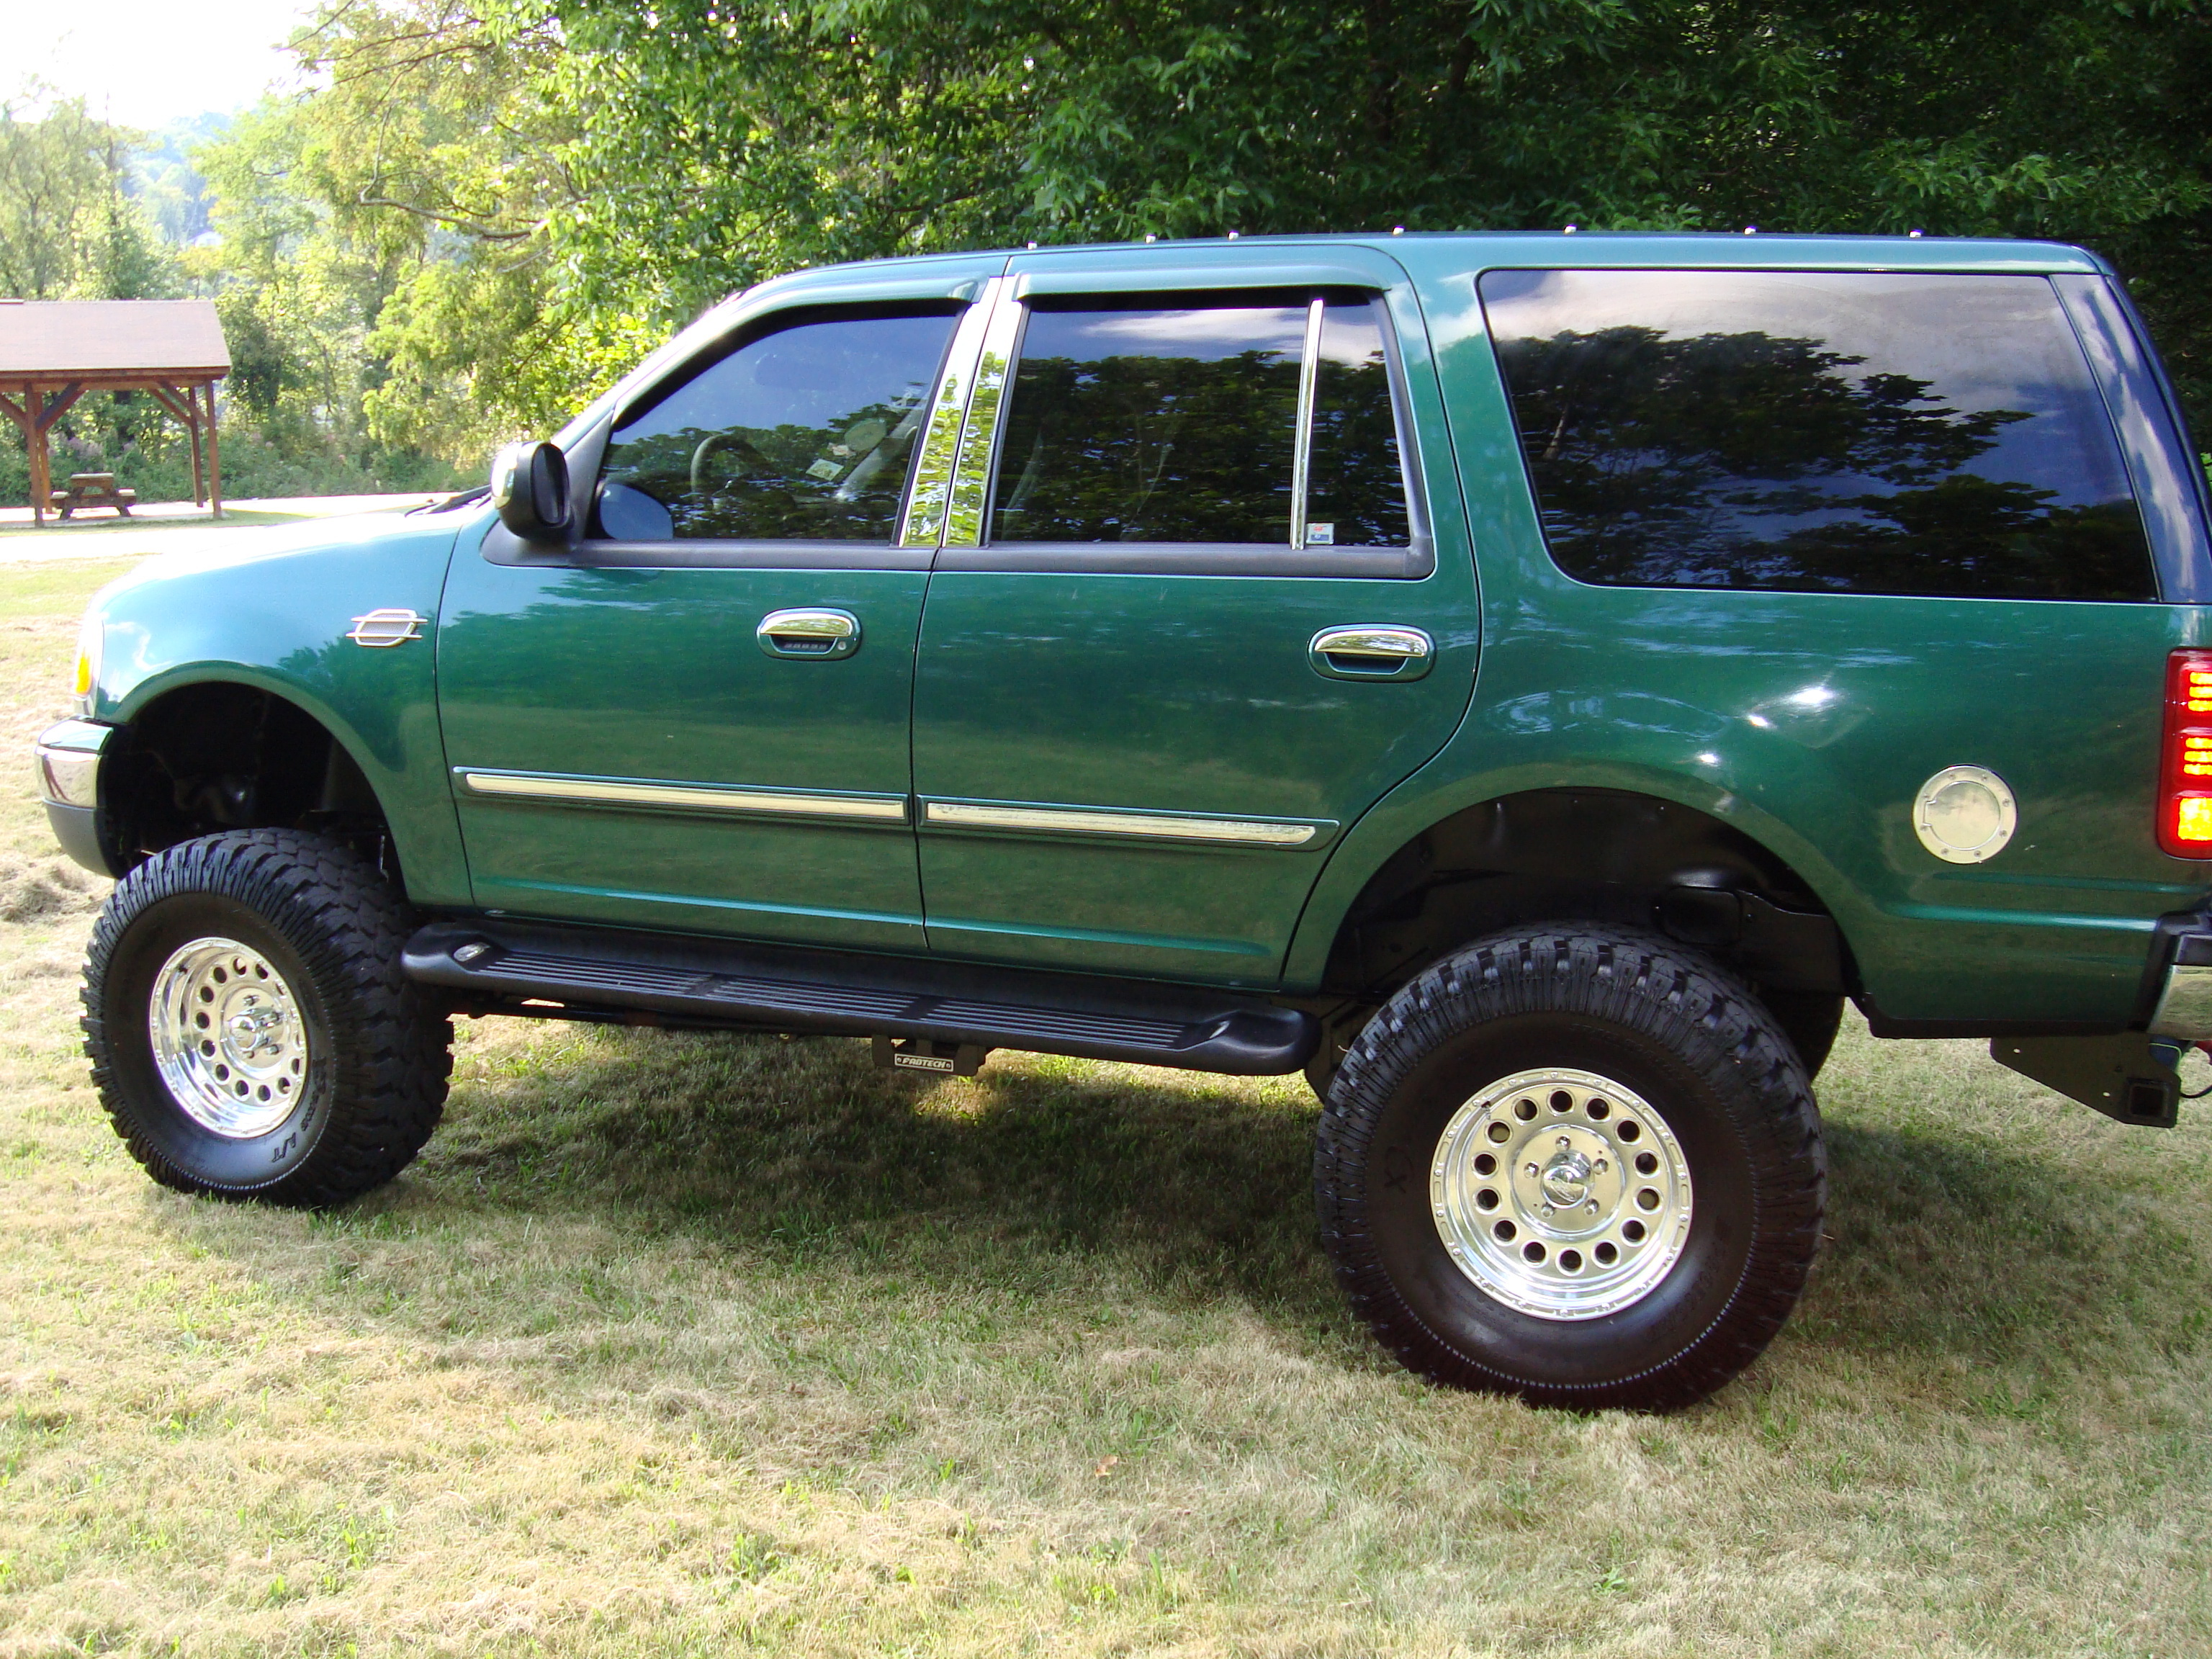 1_tuff_99_expy 1999 ford expedition